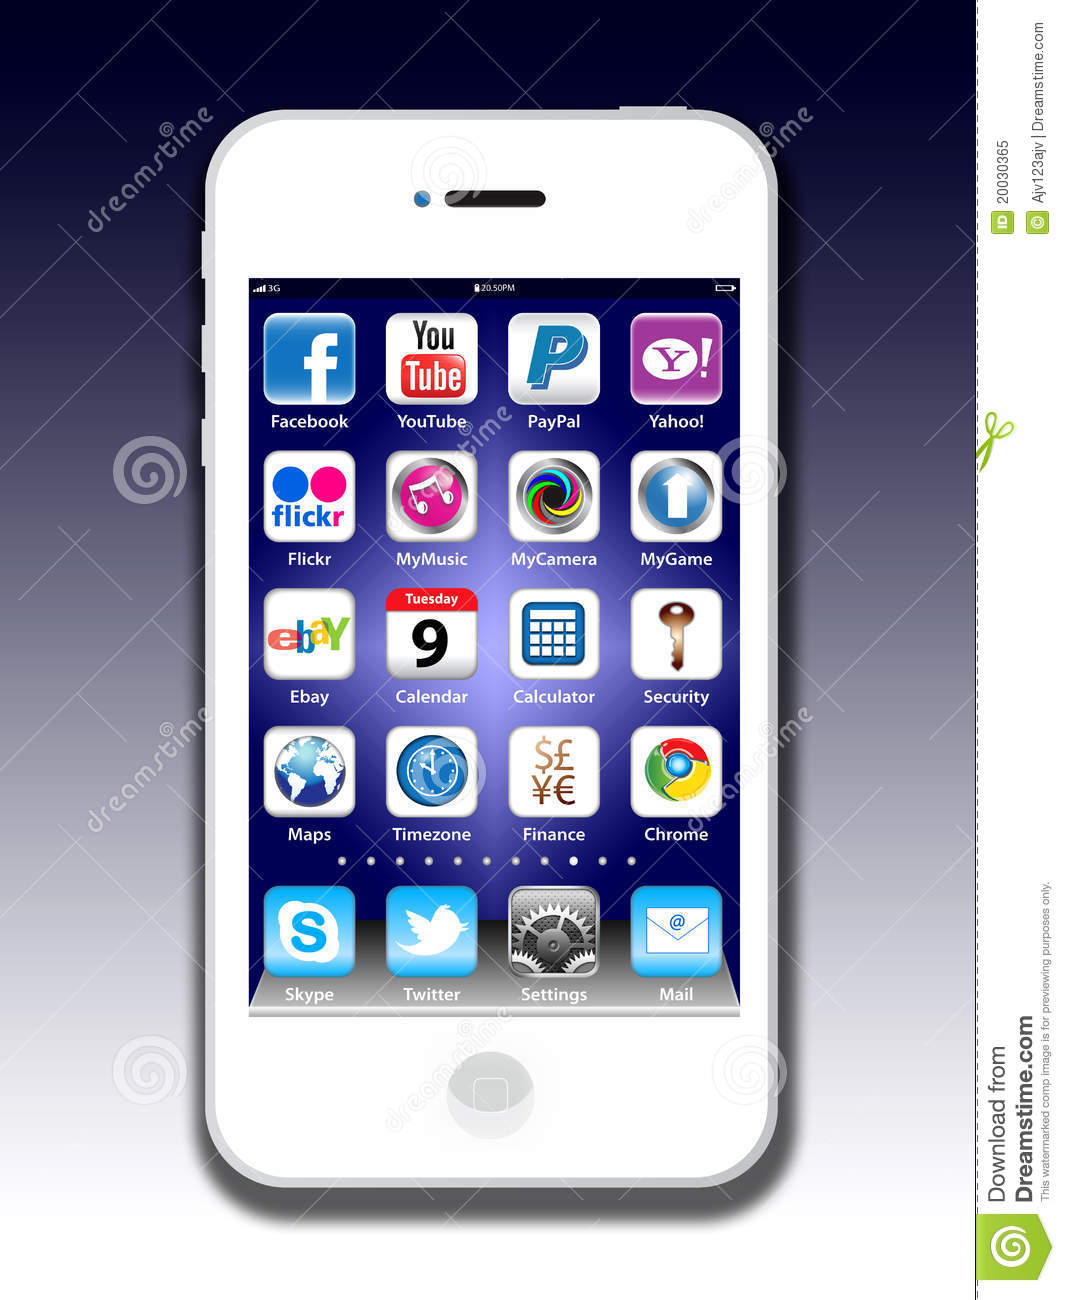 Social madia apps on a apple iphone 4s editorial image for Iphone picture apps free